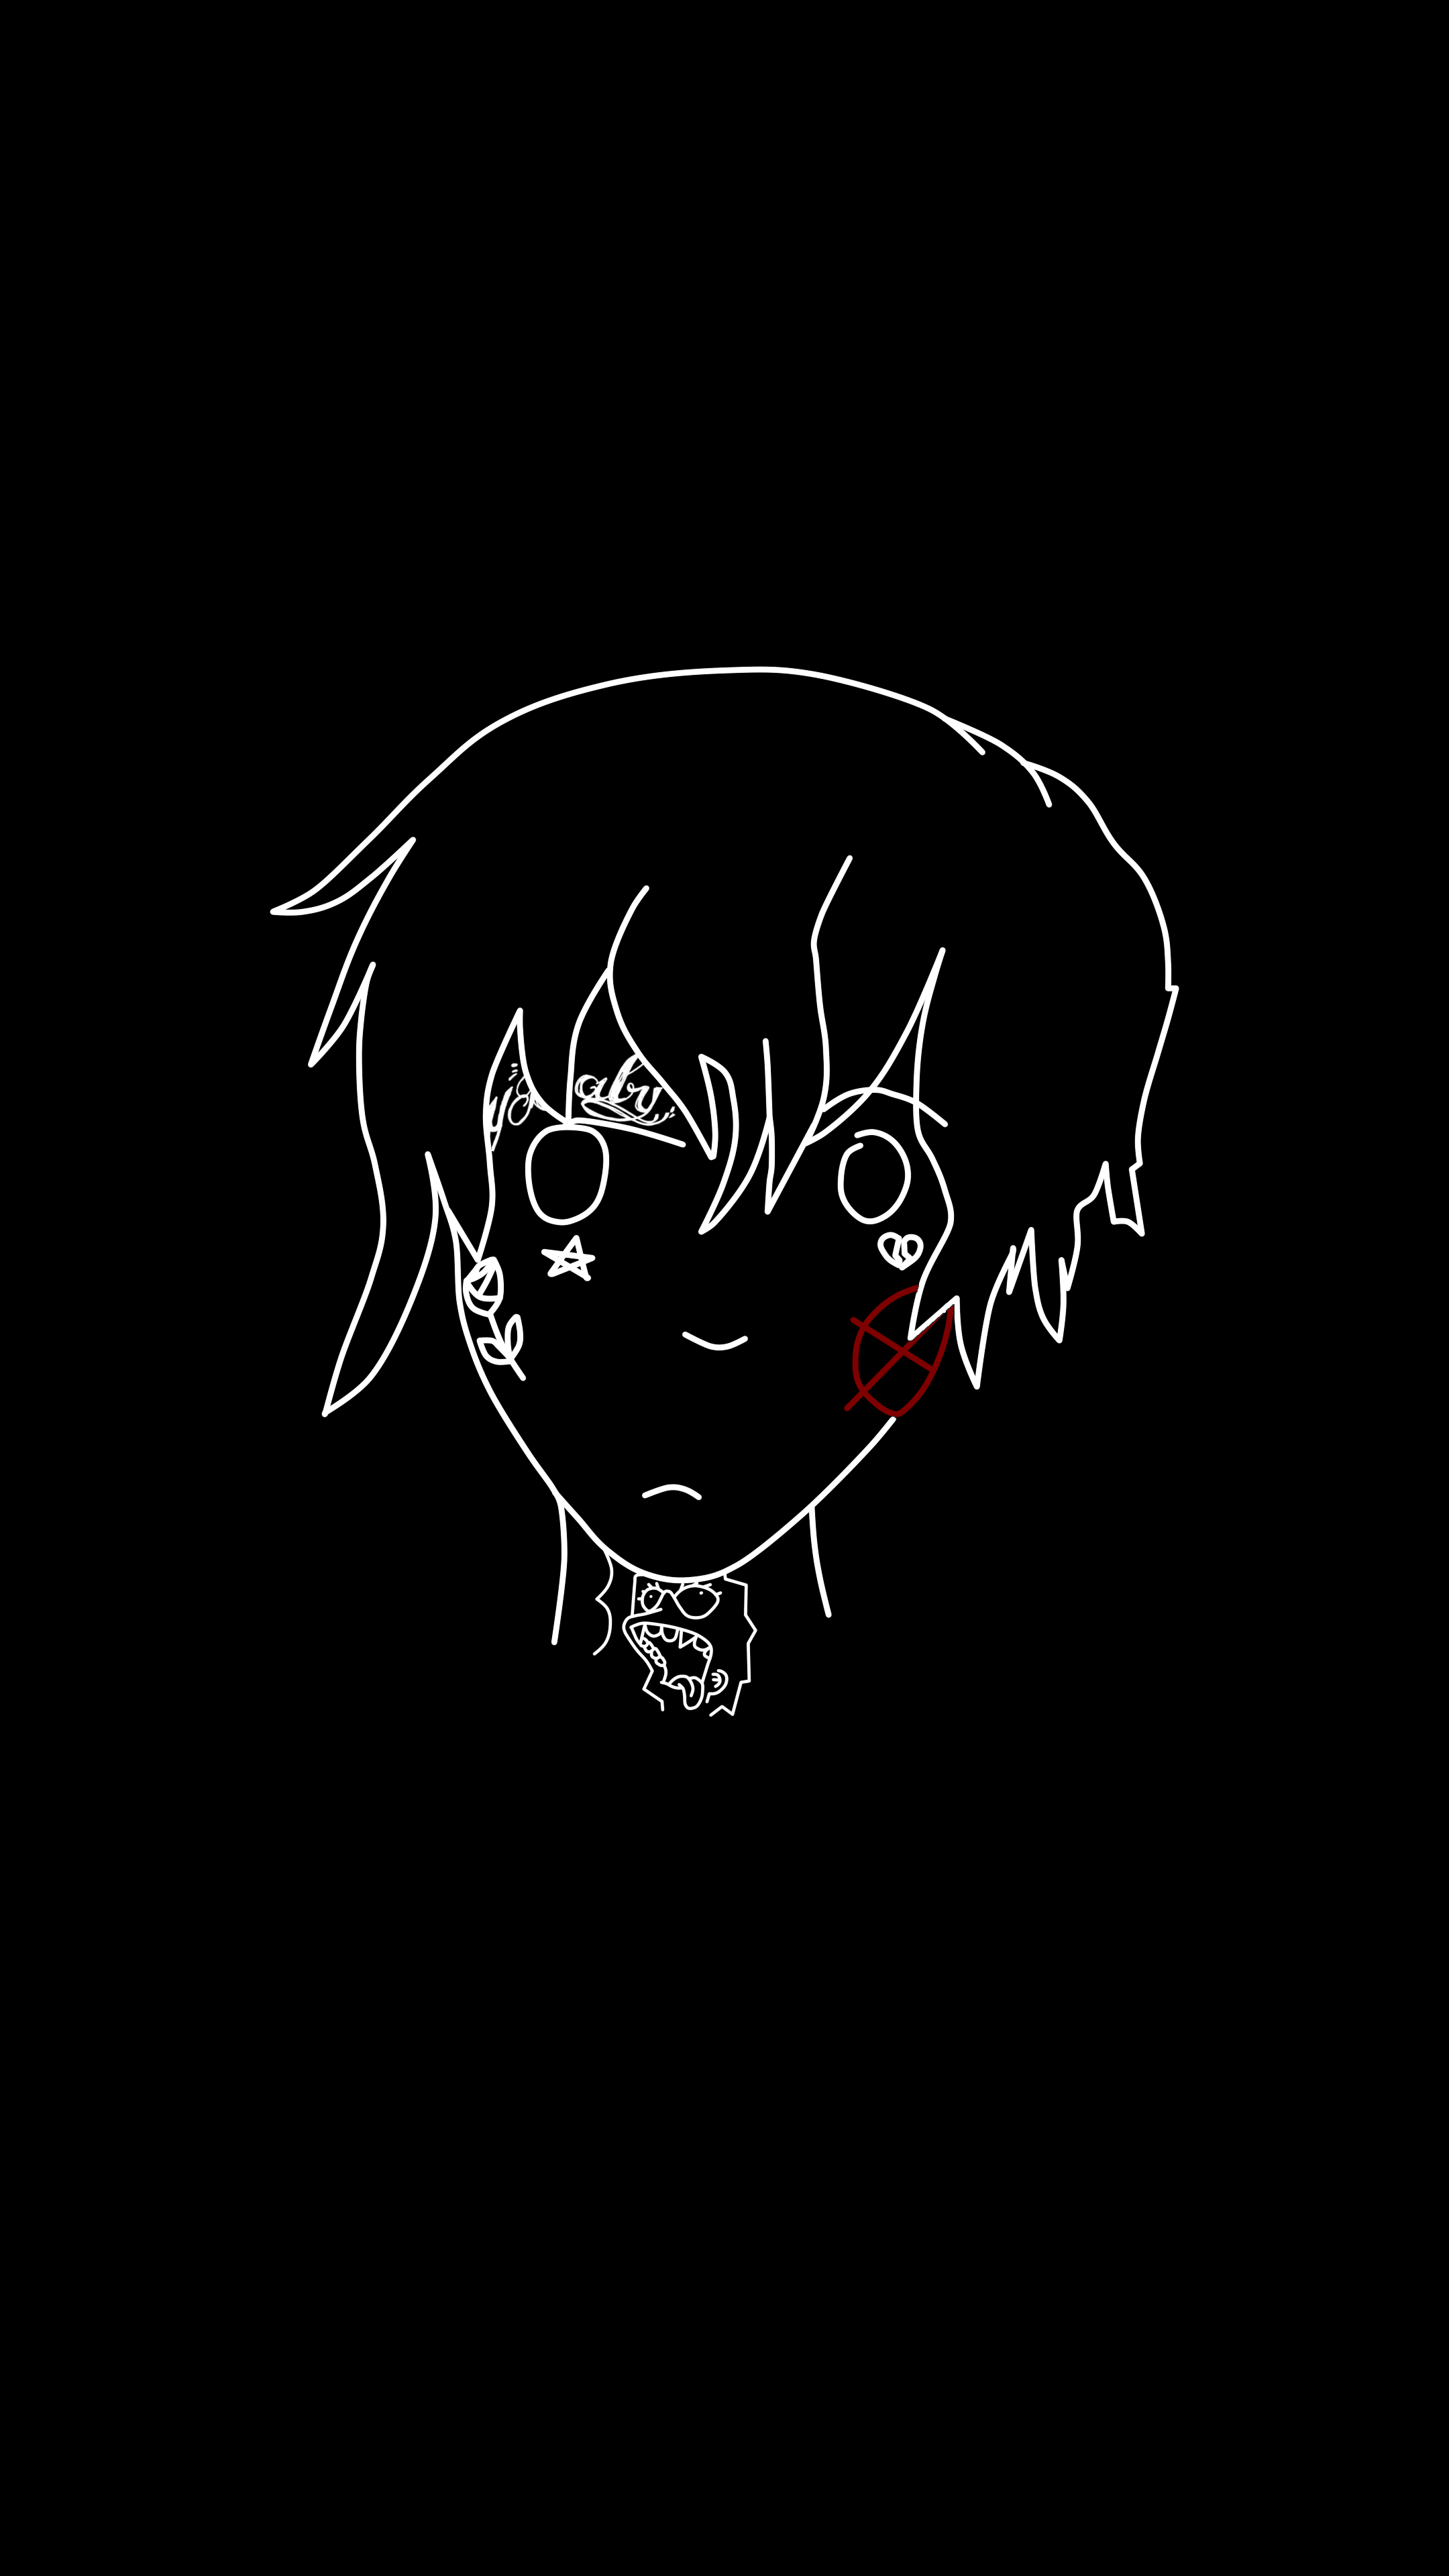 Lil Peep Desktop Wallpaper Posted By Ethan Anderson